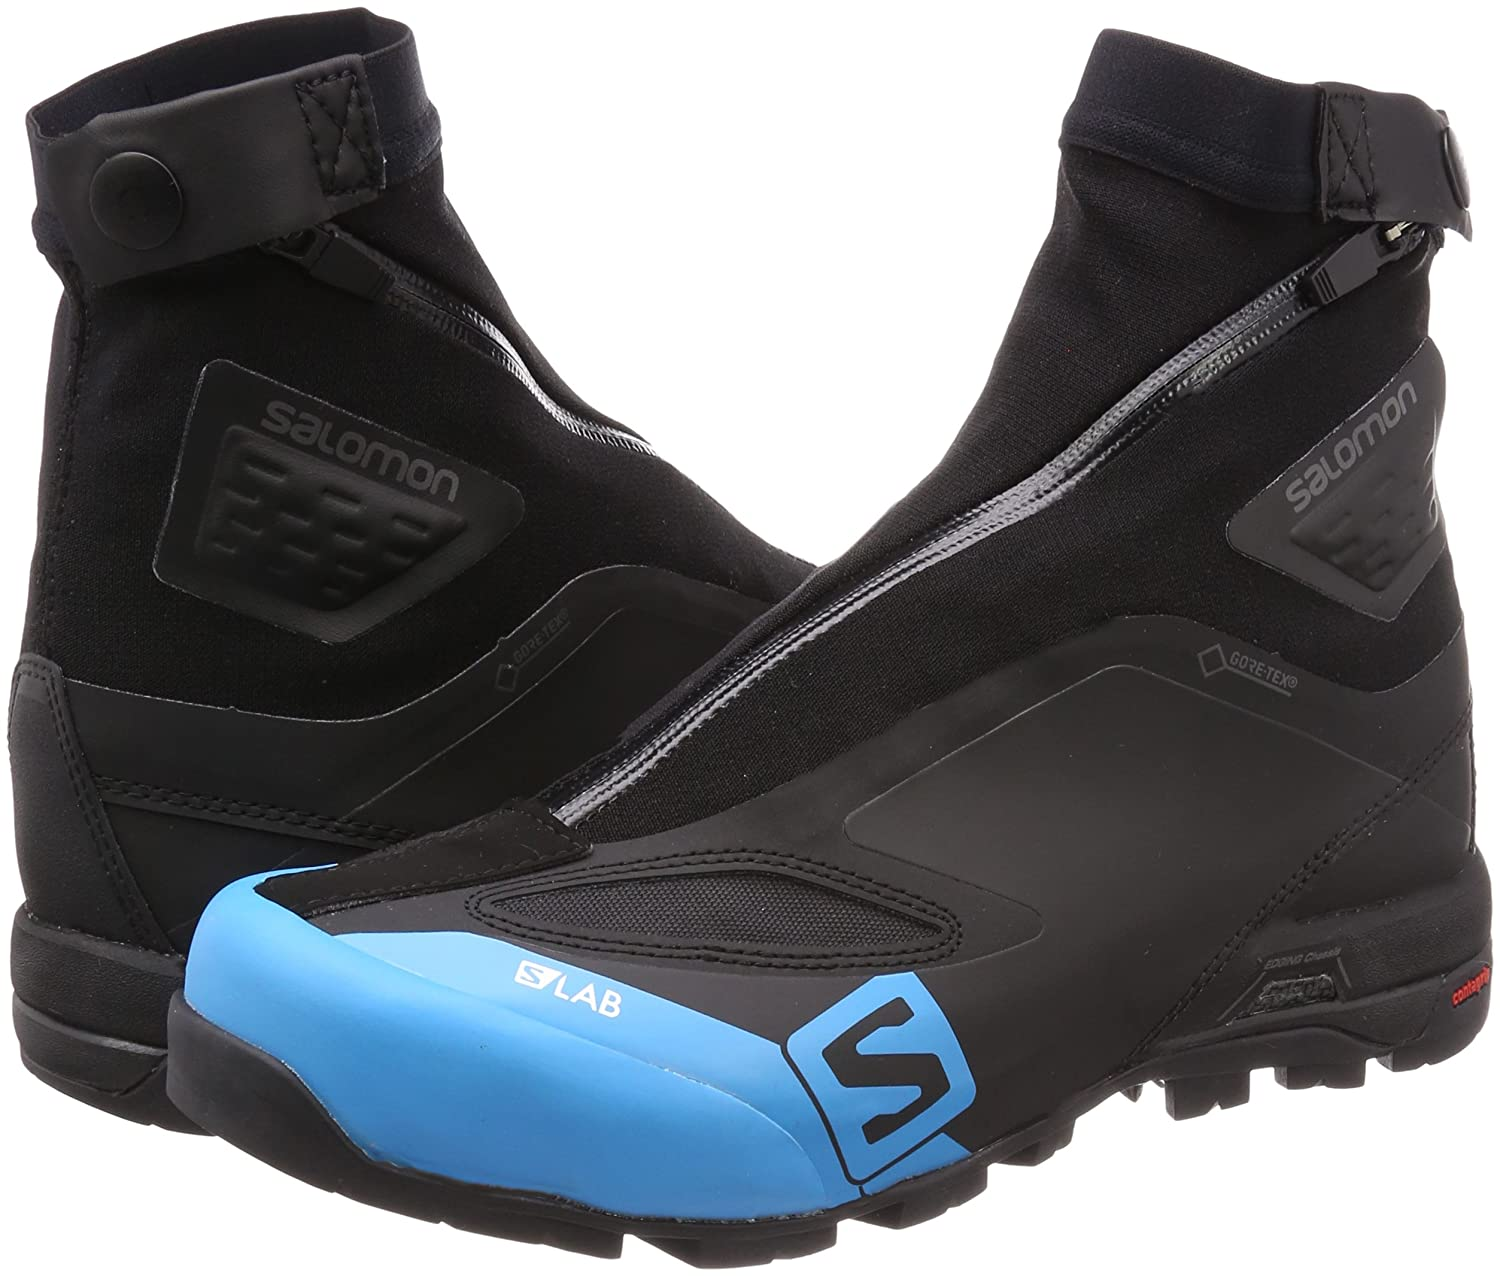 Amazon.com: Salomon S-Lab X Alpine carbono 2 GTX Boot ...